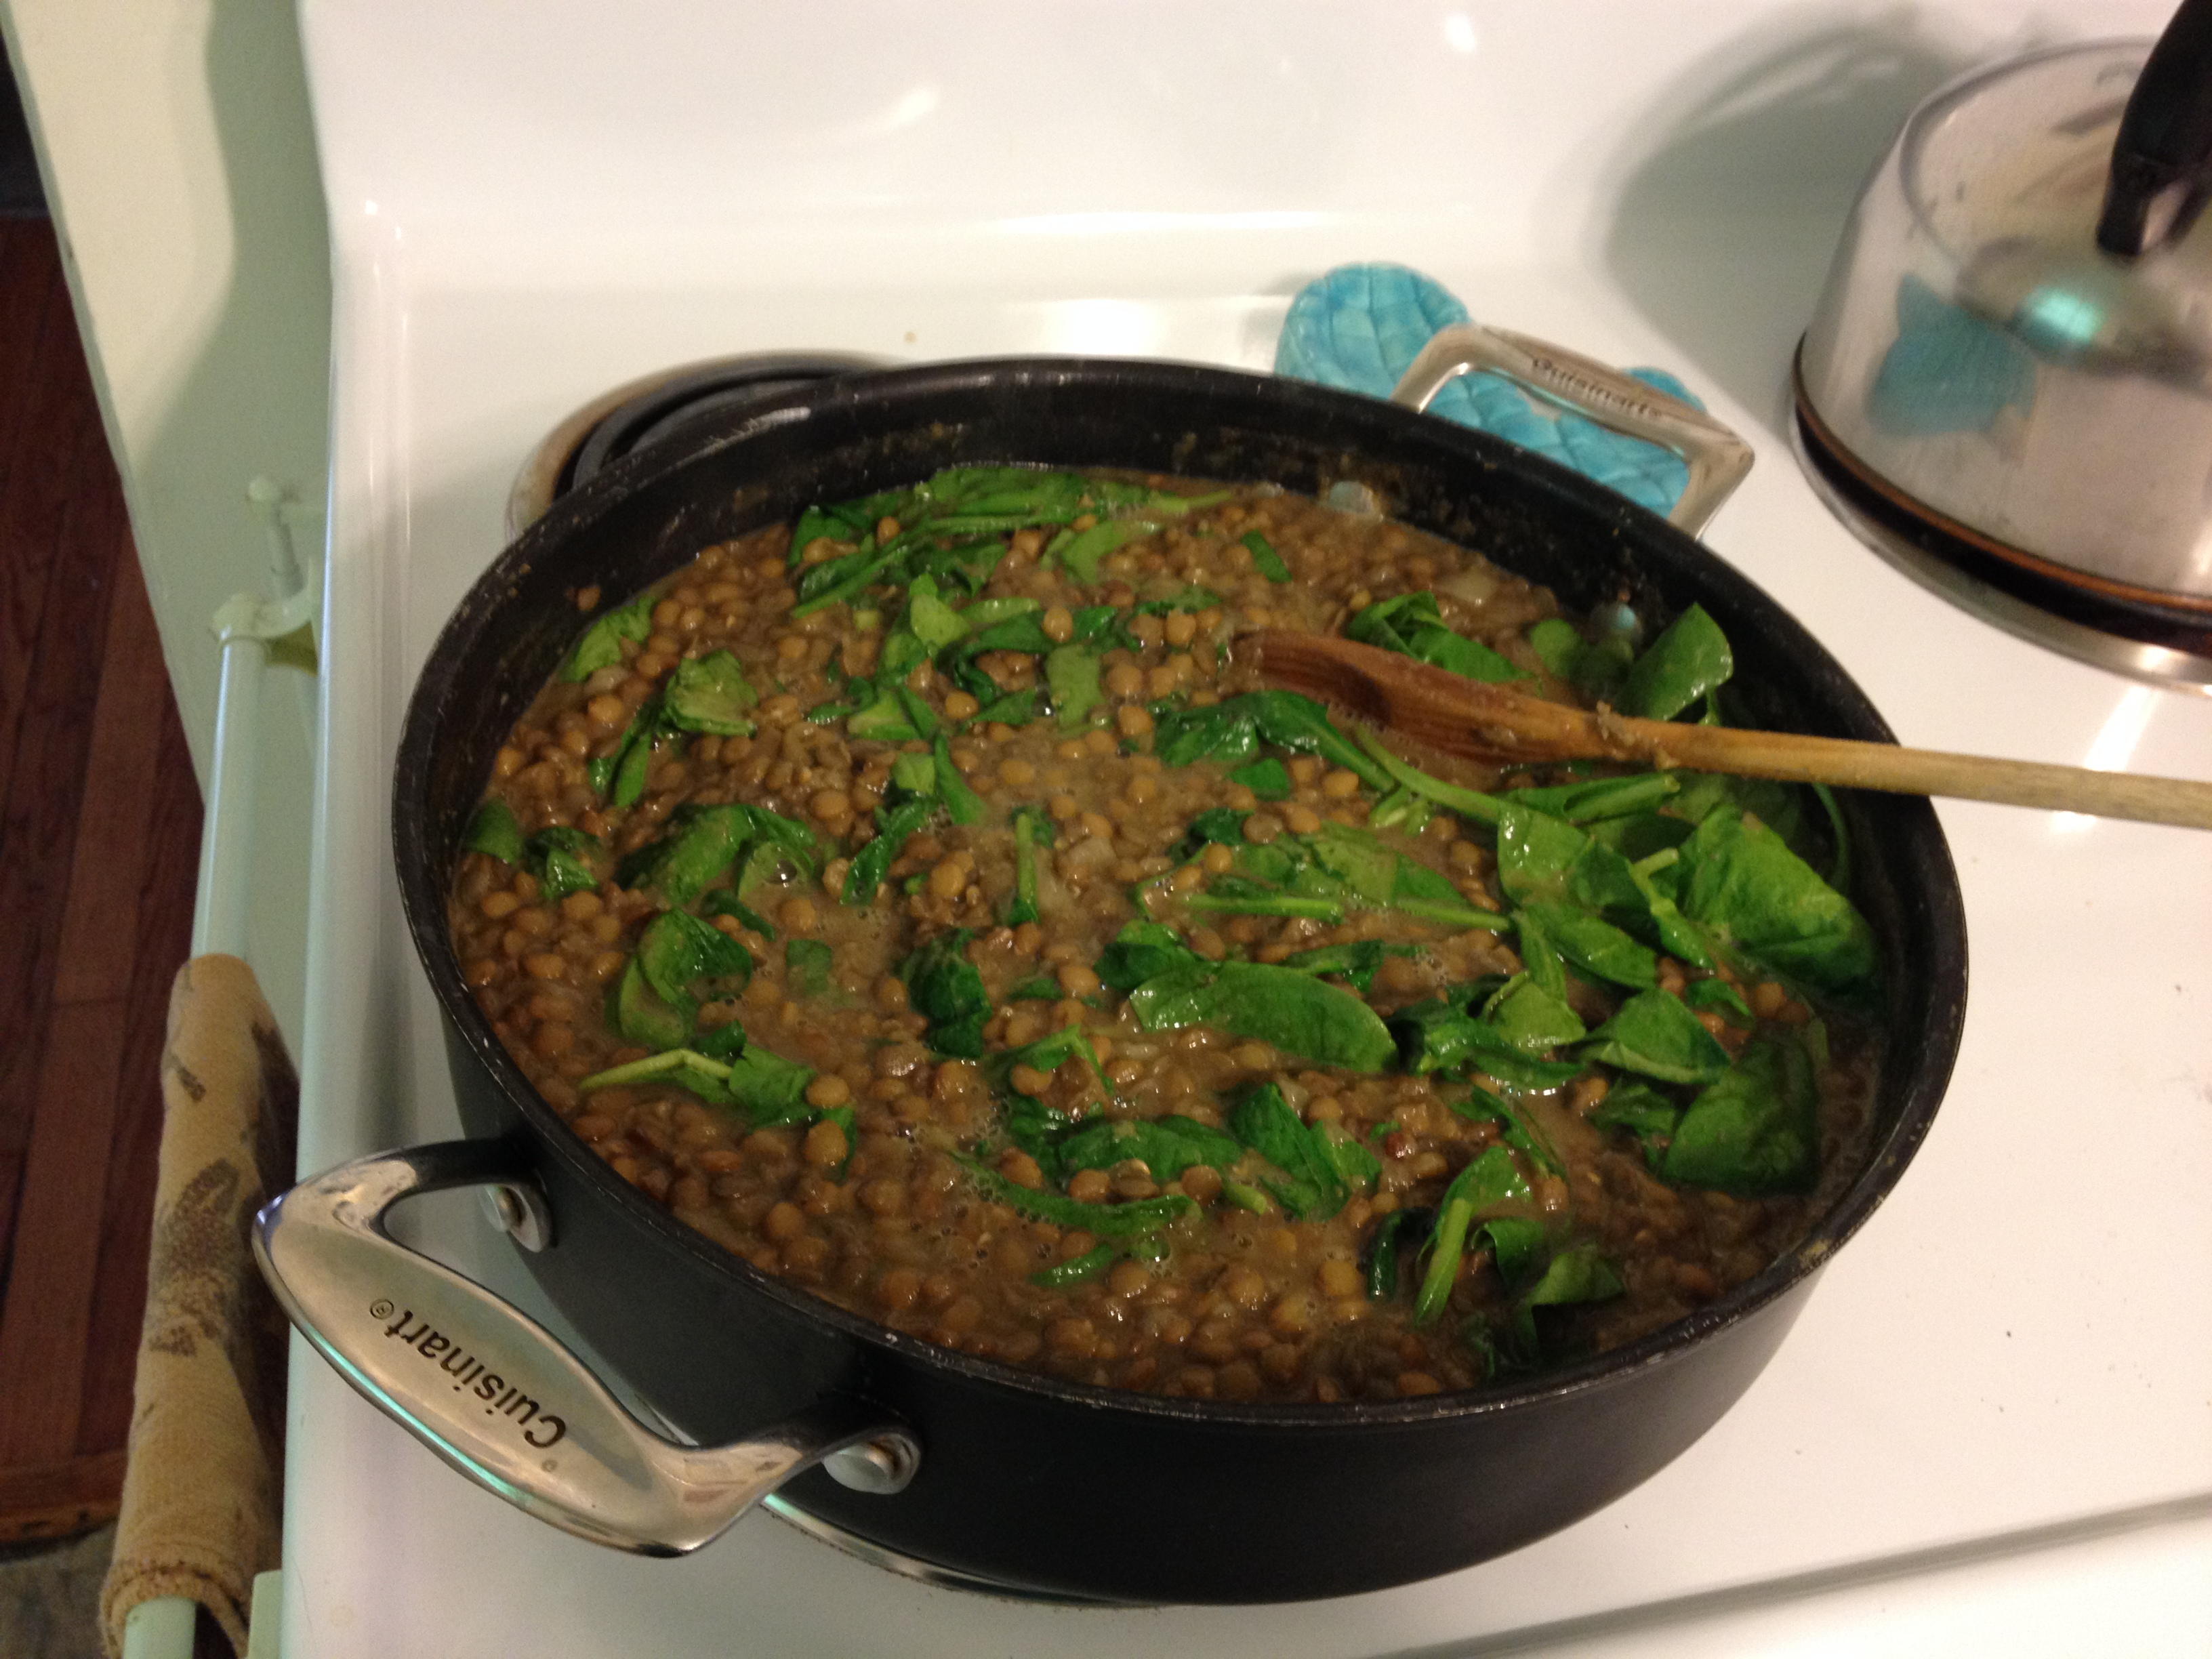 Lentil Soup with Greens and Garlic